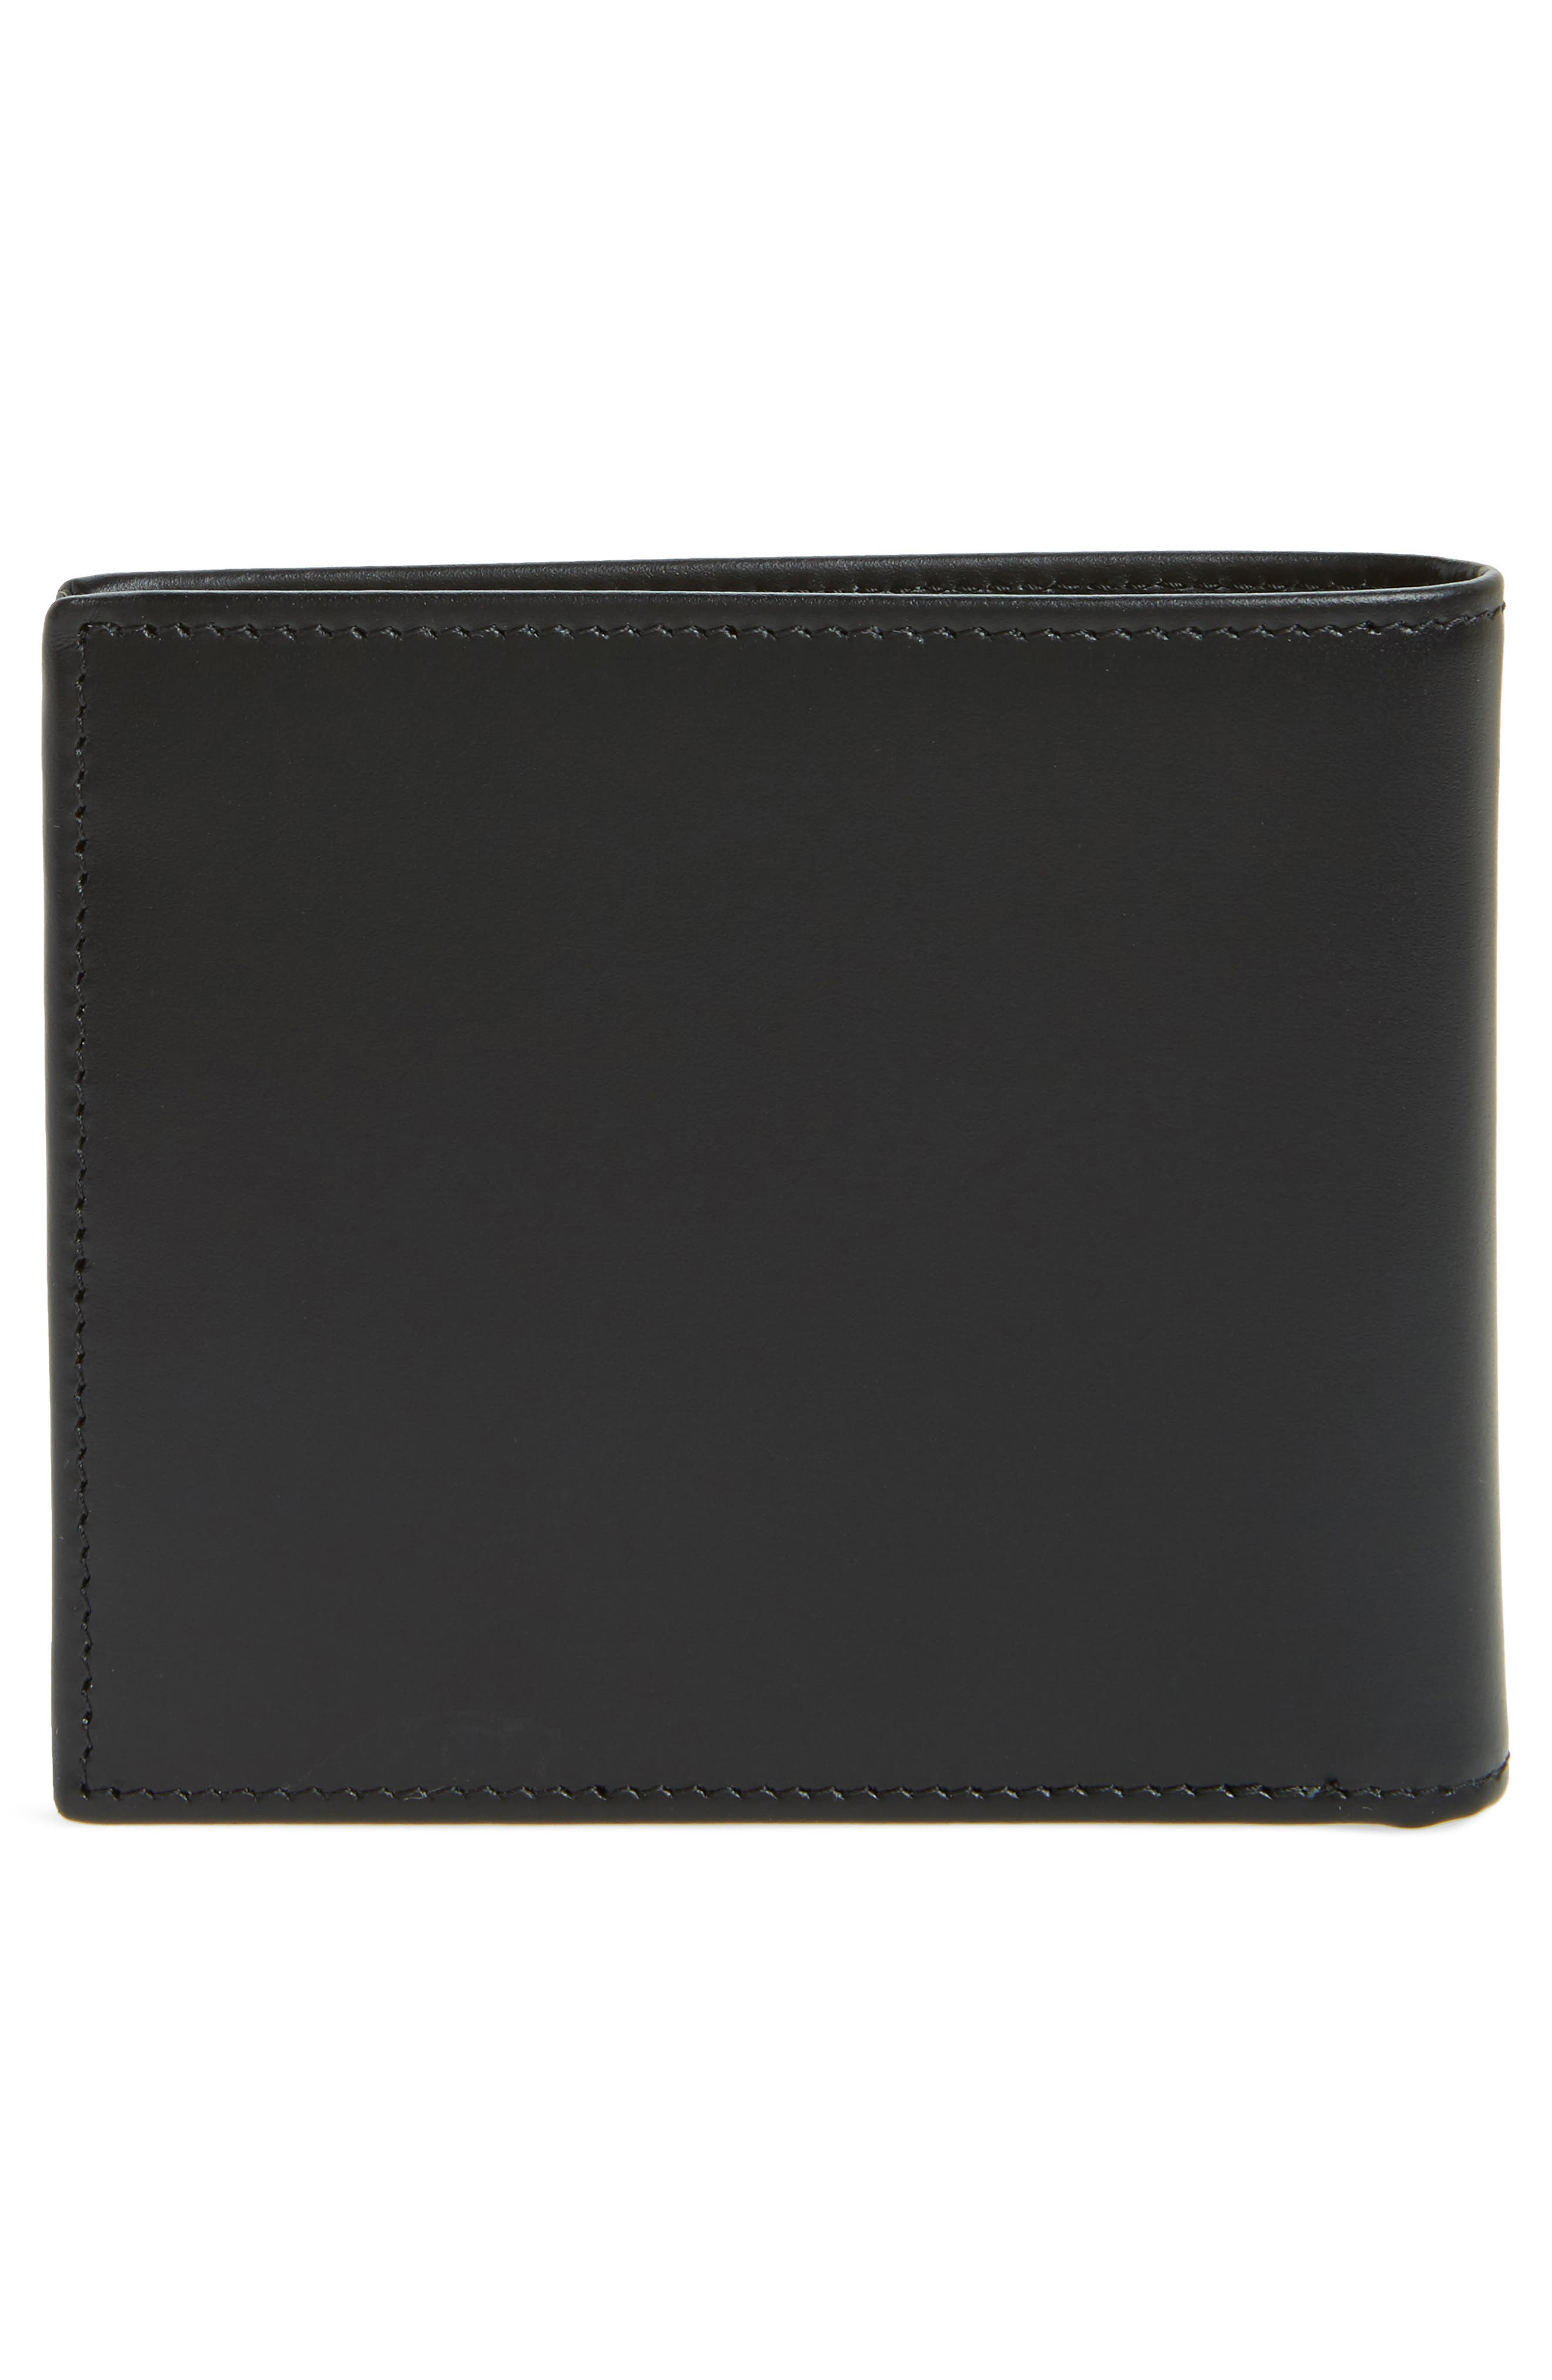 Multistripe Leather Bifold Wallet,                             Alternate thumbnail 3, color,